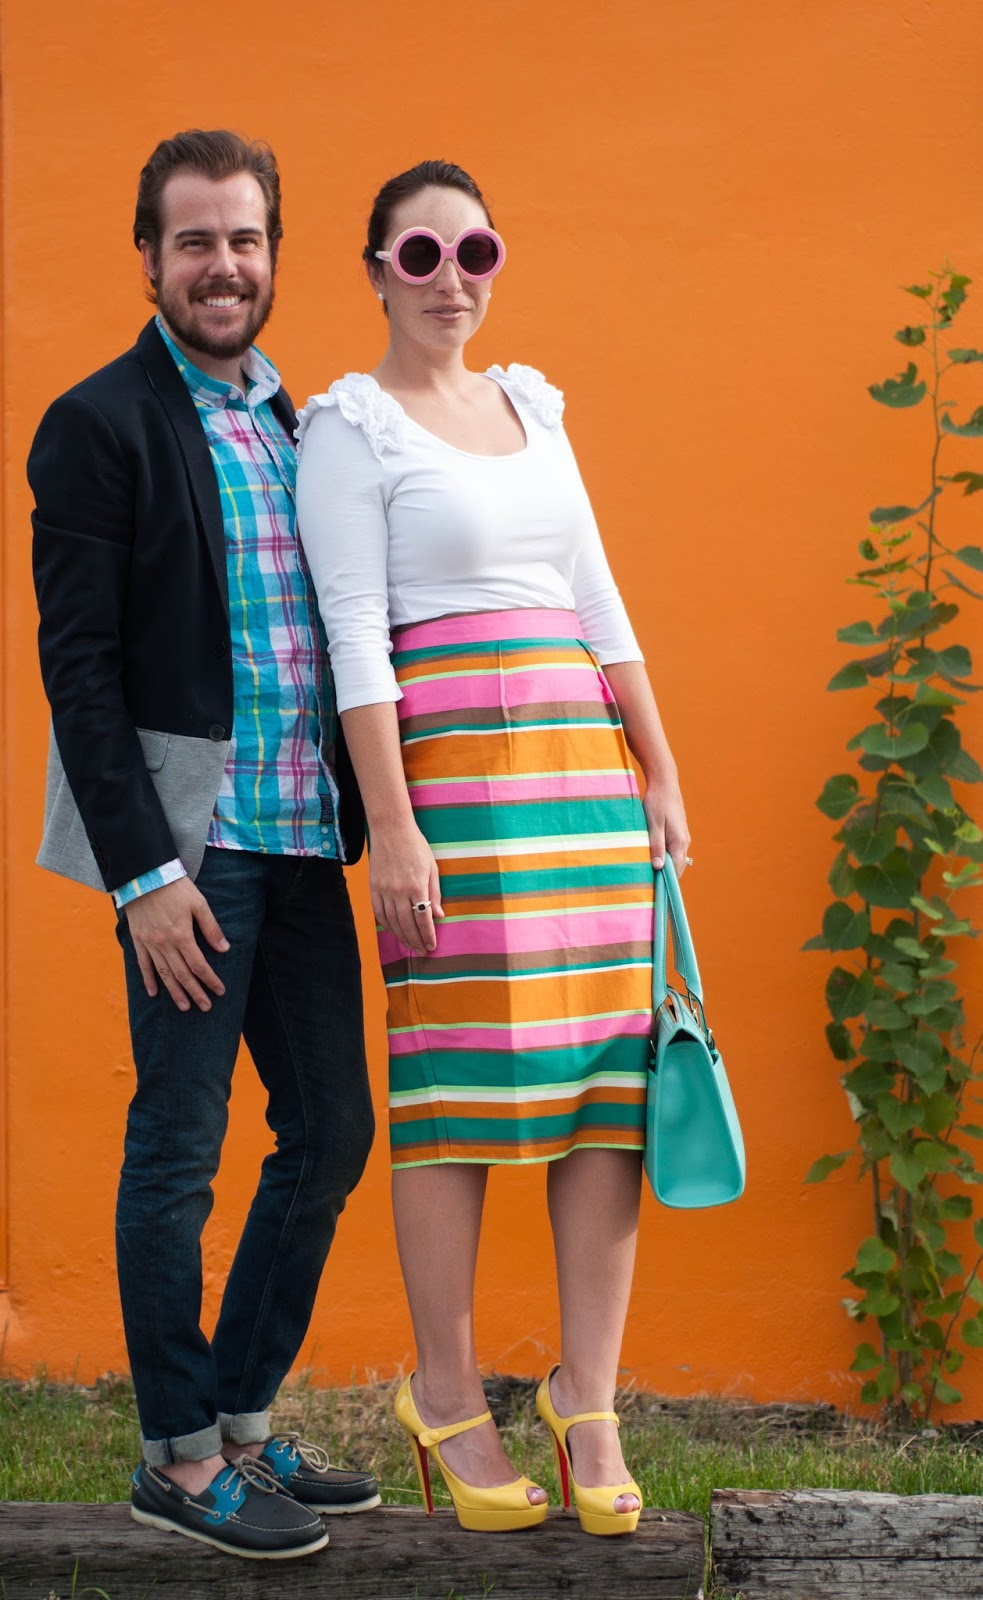 couples style, couples fashion, zara man, ootd, his and her fashion, pencil skirt, christian louboutin heels